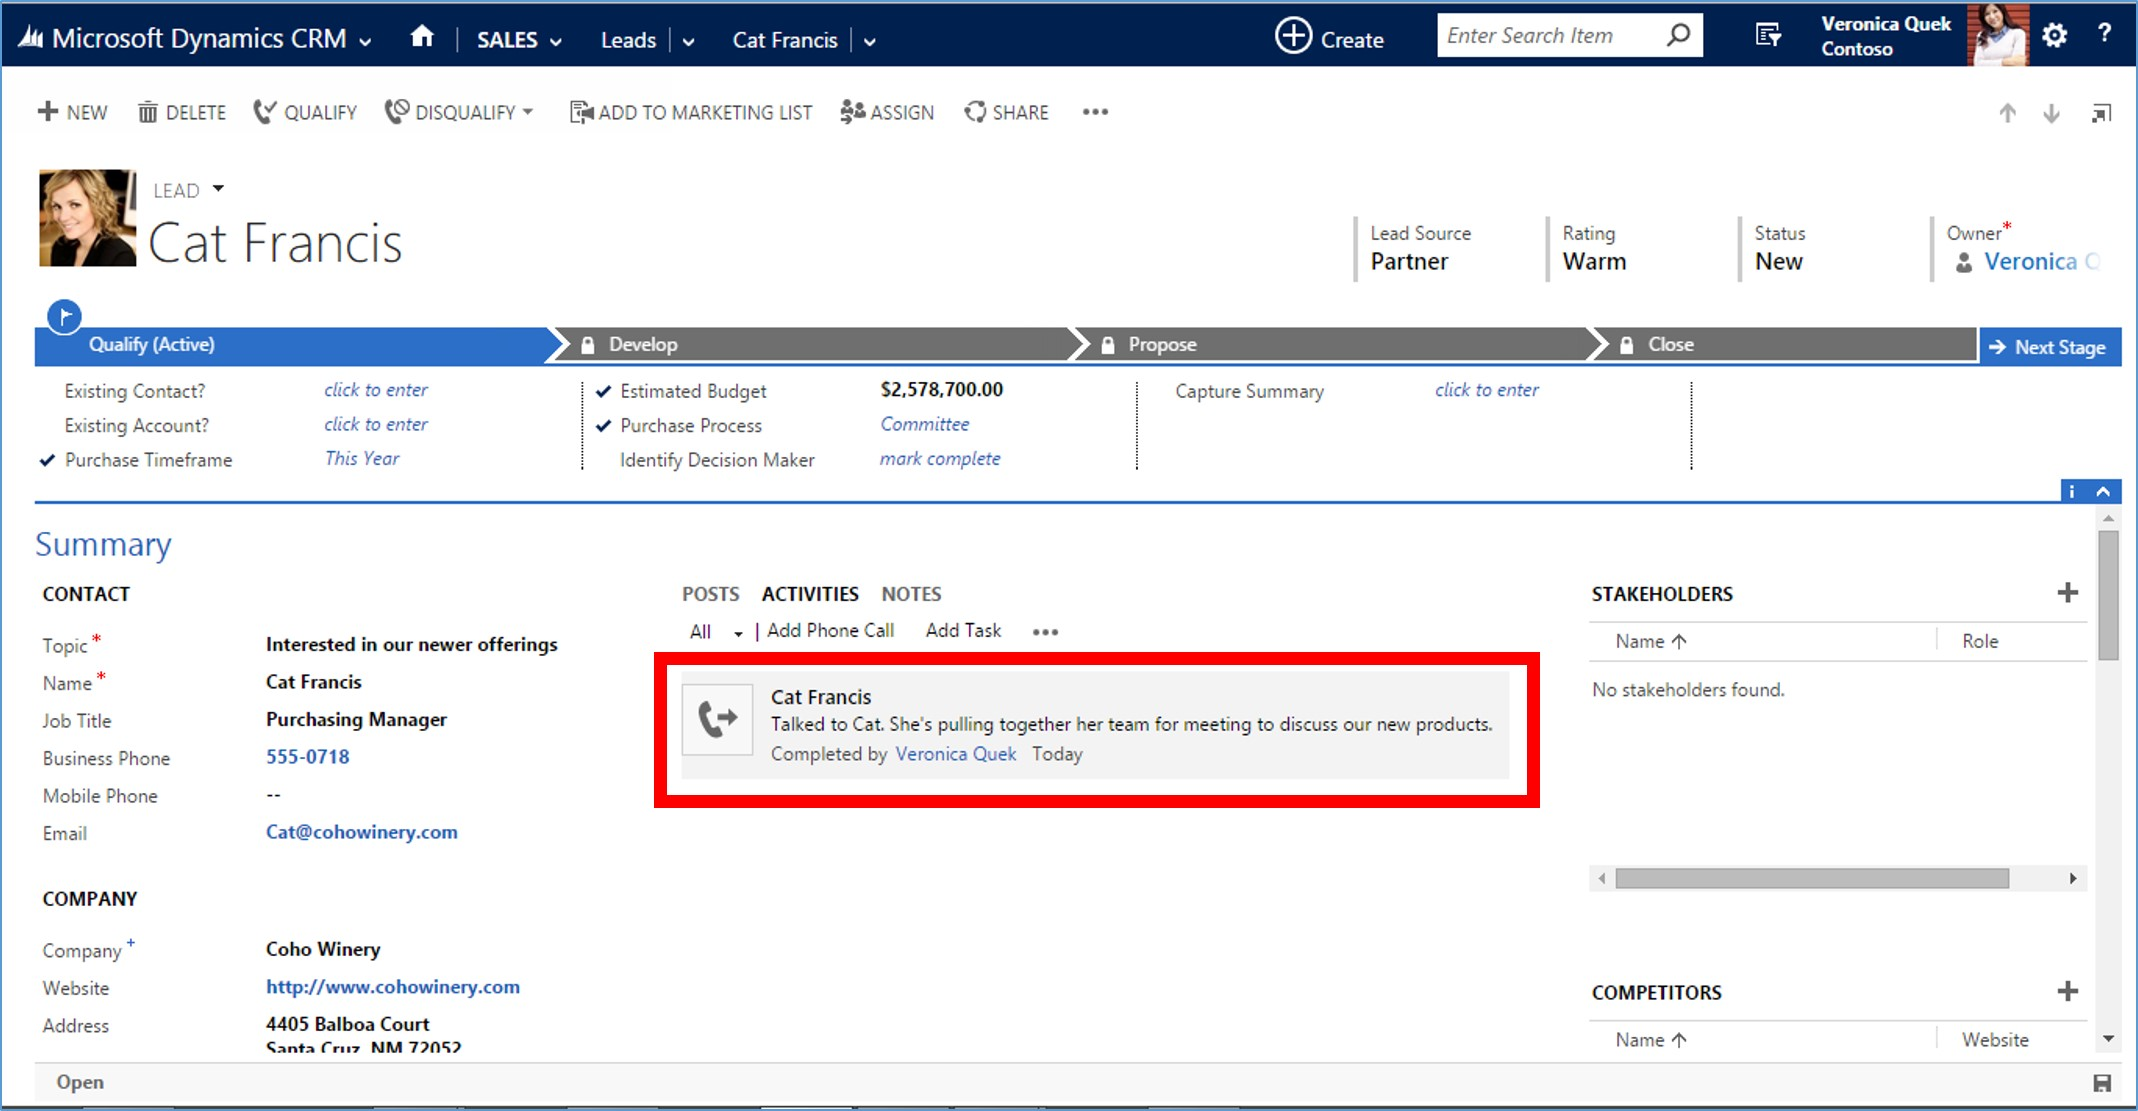 Microsoft Dynamics CRM Closed Call Record